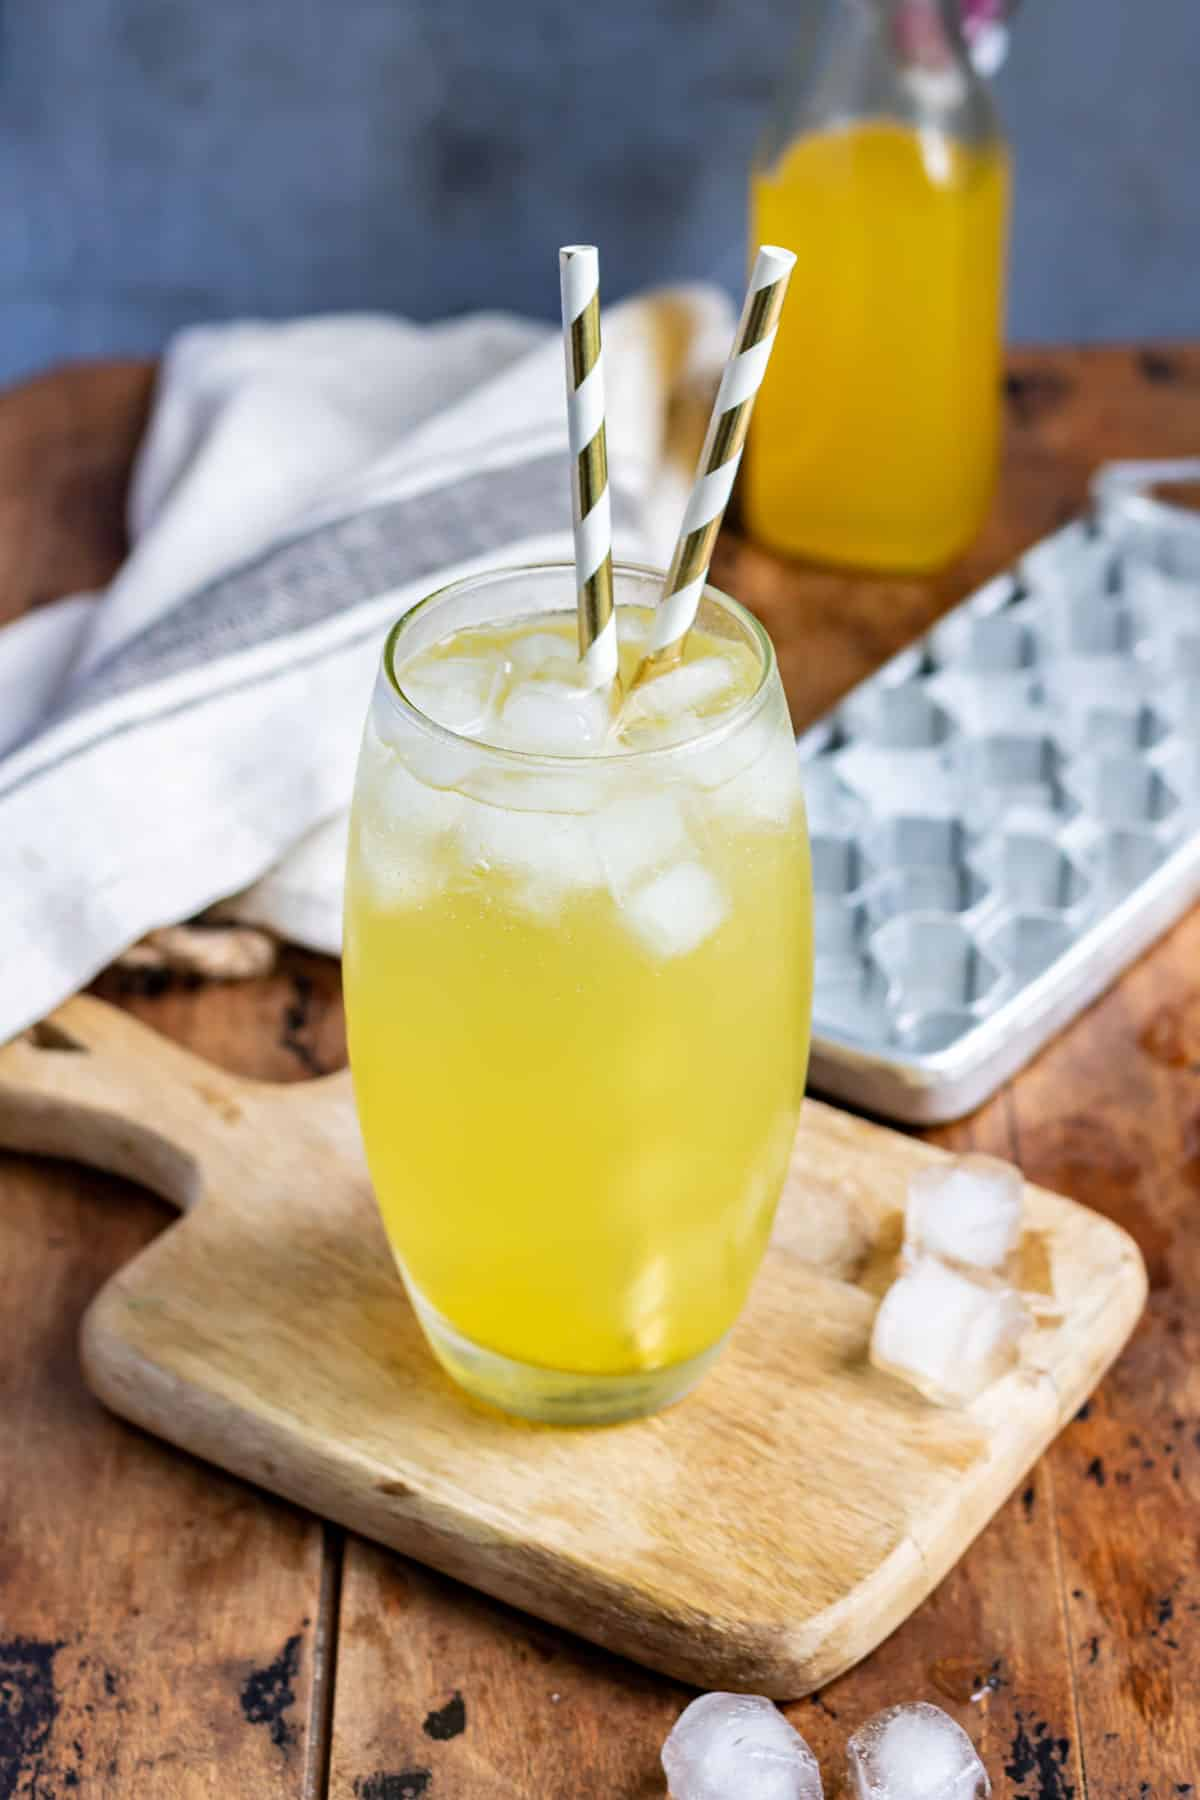 Table with ice and a glass of soda with mango syrup.